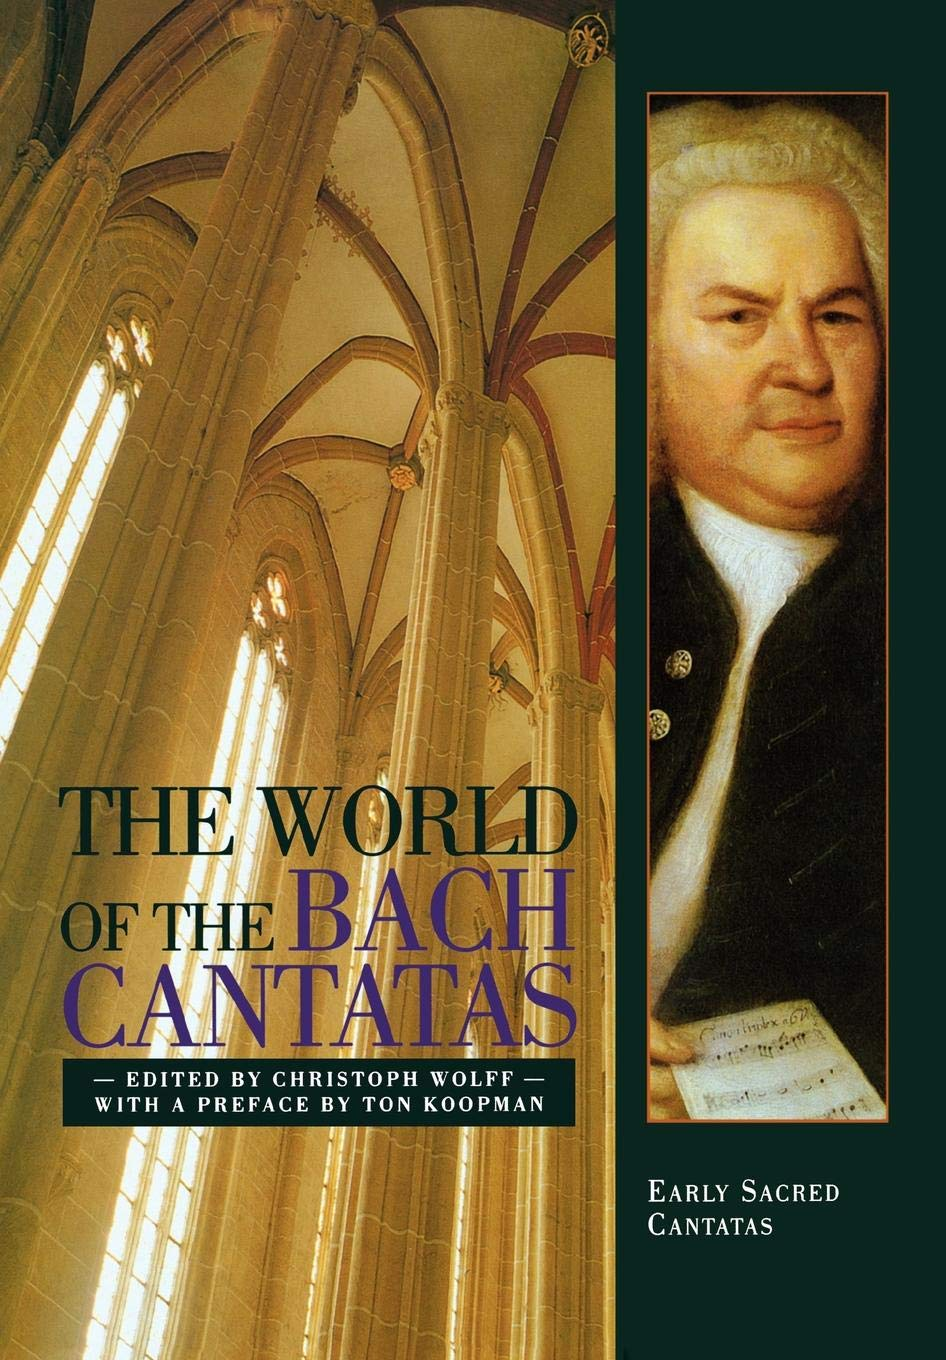 The World of the Bach Cantatas: Early Selected Cantatas: Christoph Wolff,  Ton Koopman: 9780393336740: Amazon.com: Books